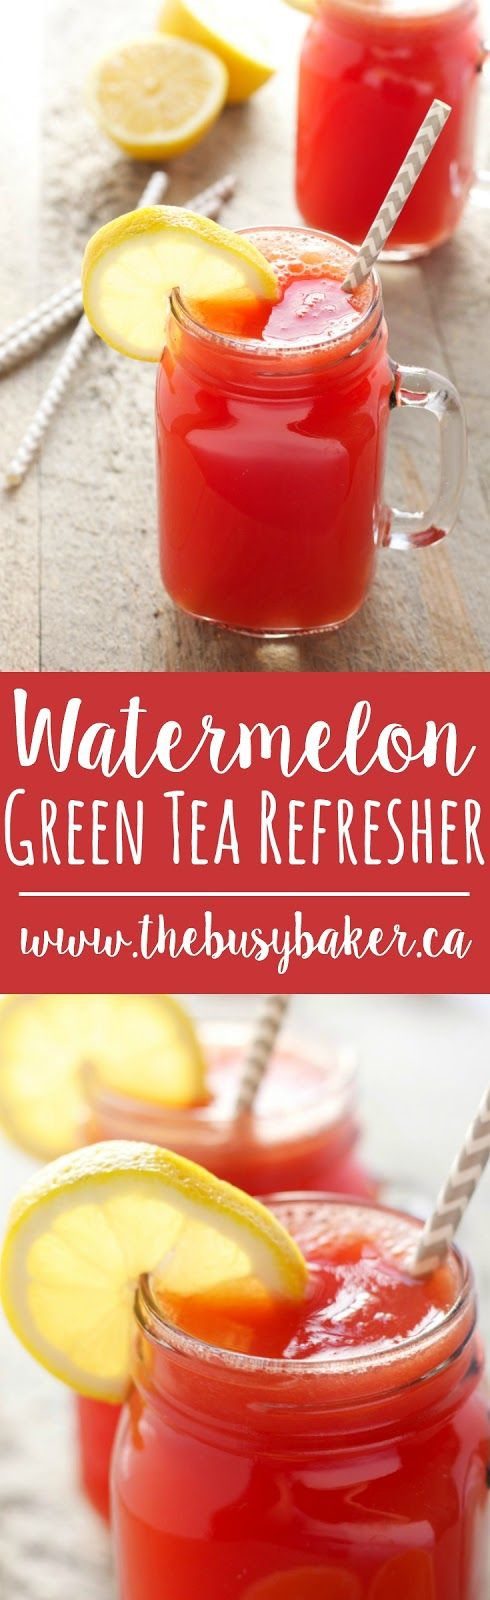 This Watermelon Green Tea Refresher is the perfect healthy non-alcoholic cocktail for Spring! Recipe from thebusybaker.ca!